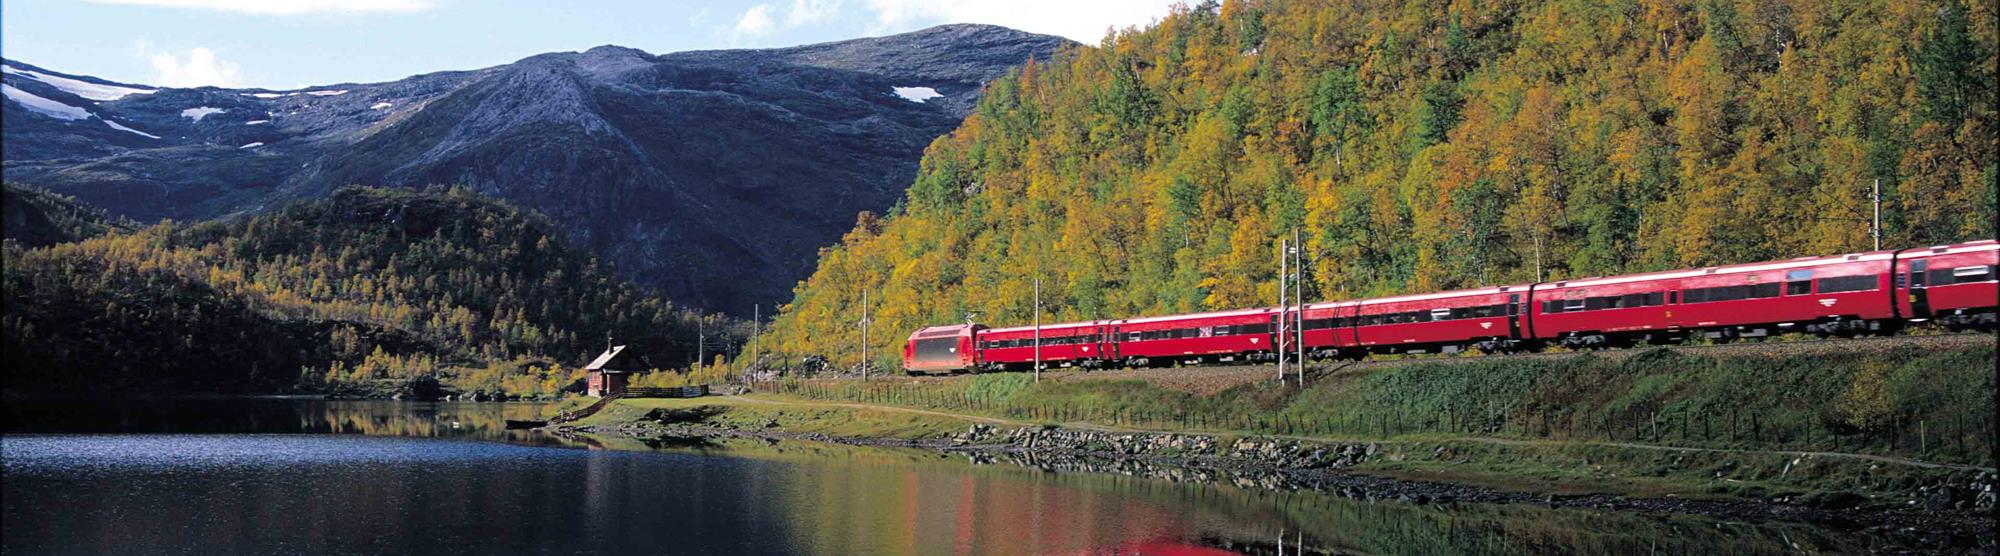 The Bergen Railway (Bergensbanen)